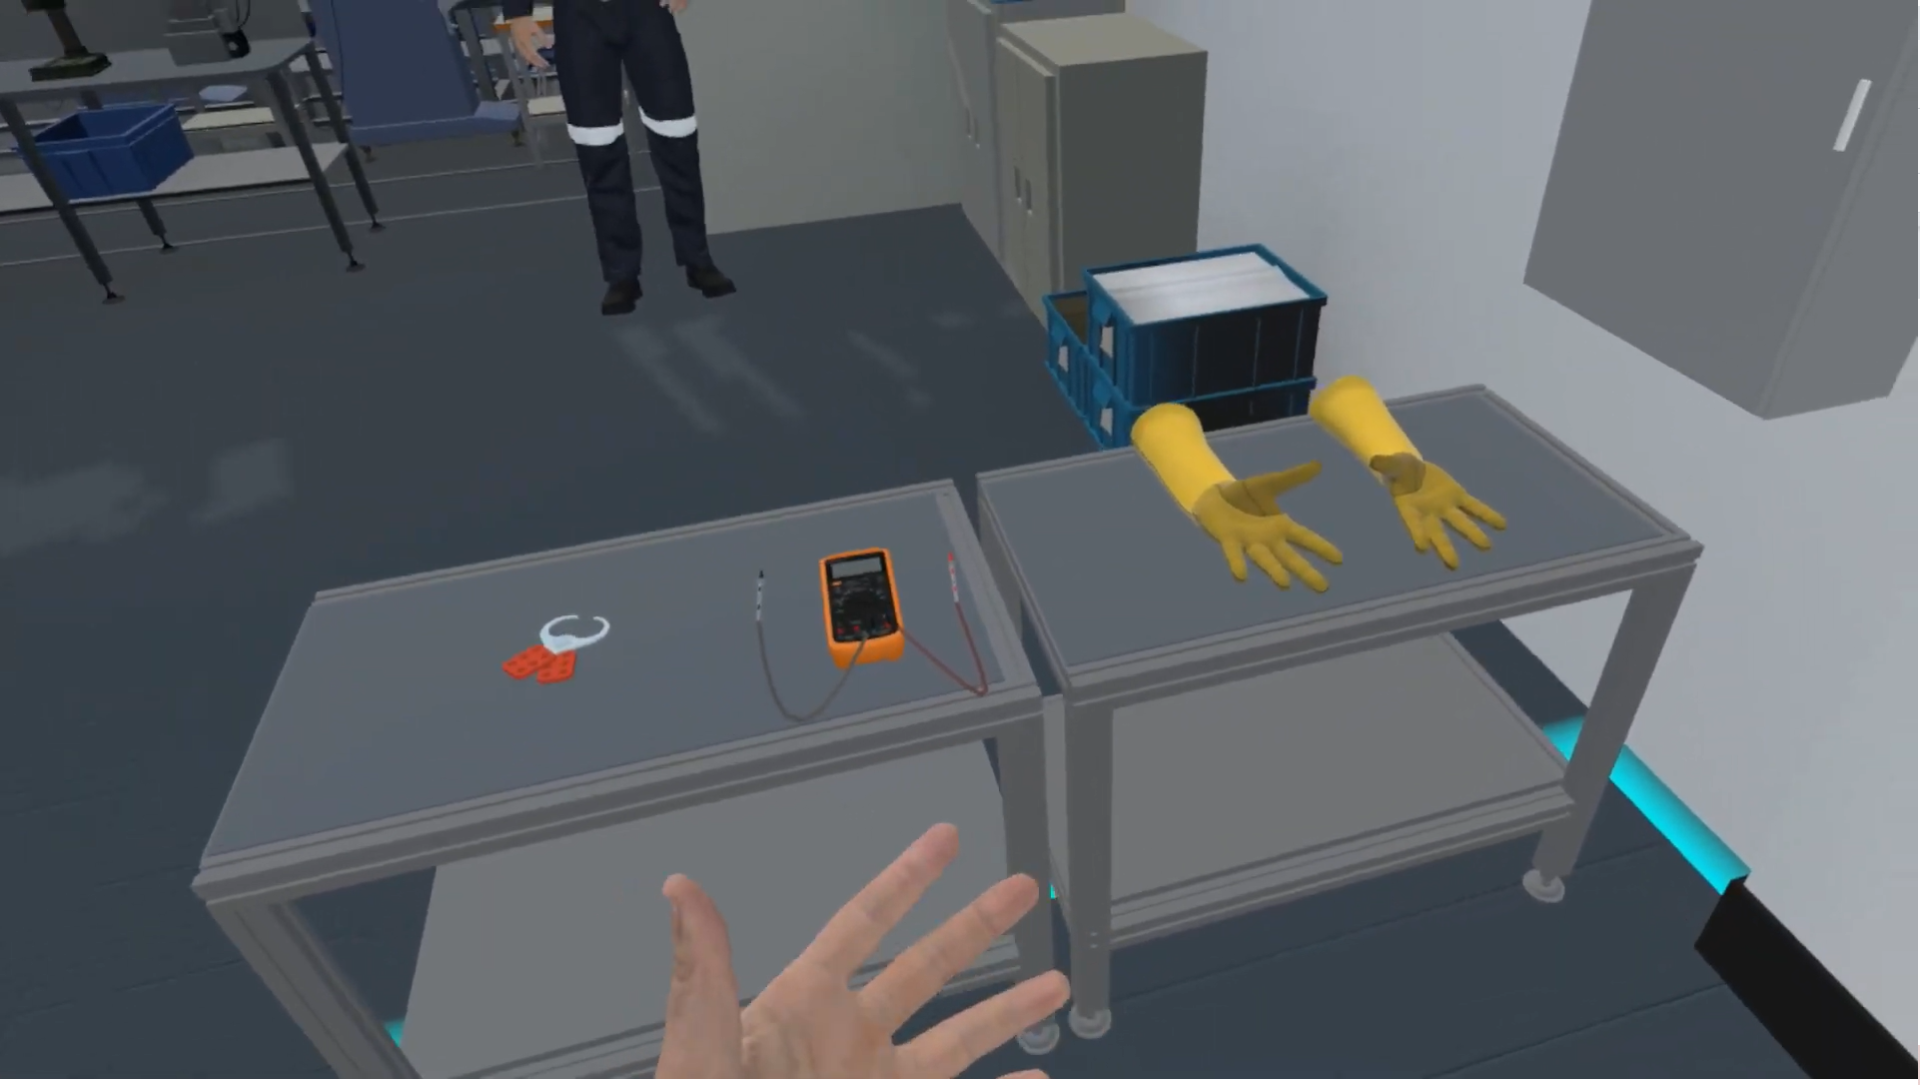 Simulation of electrical safety training